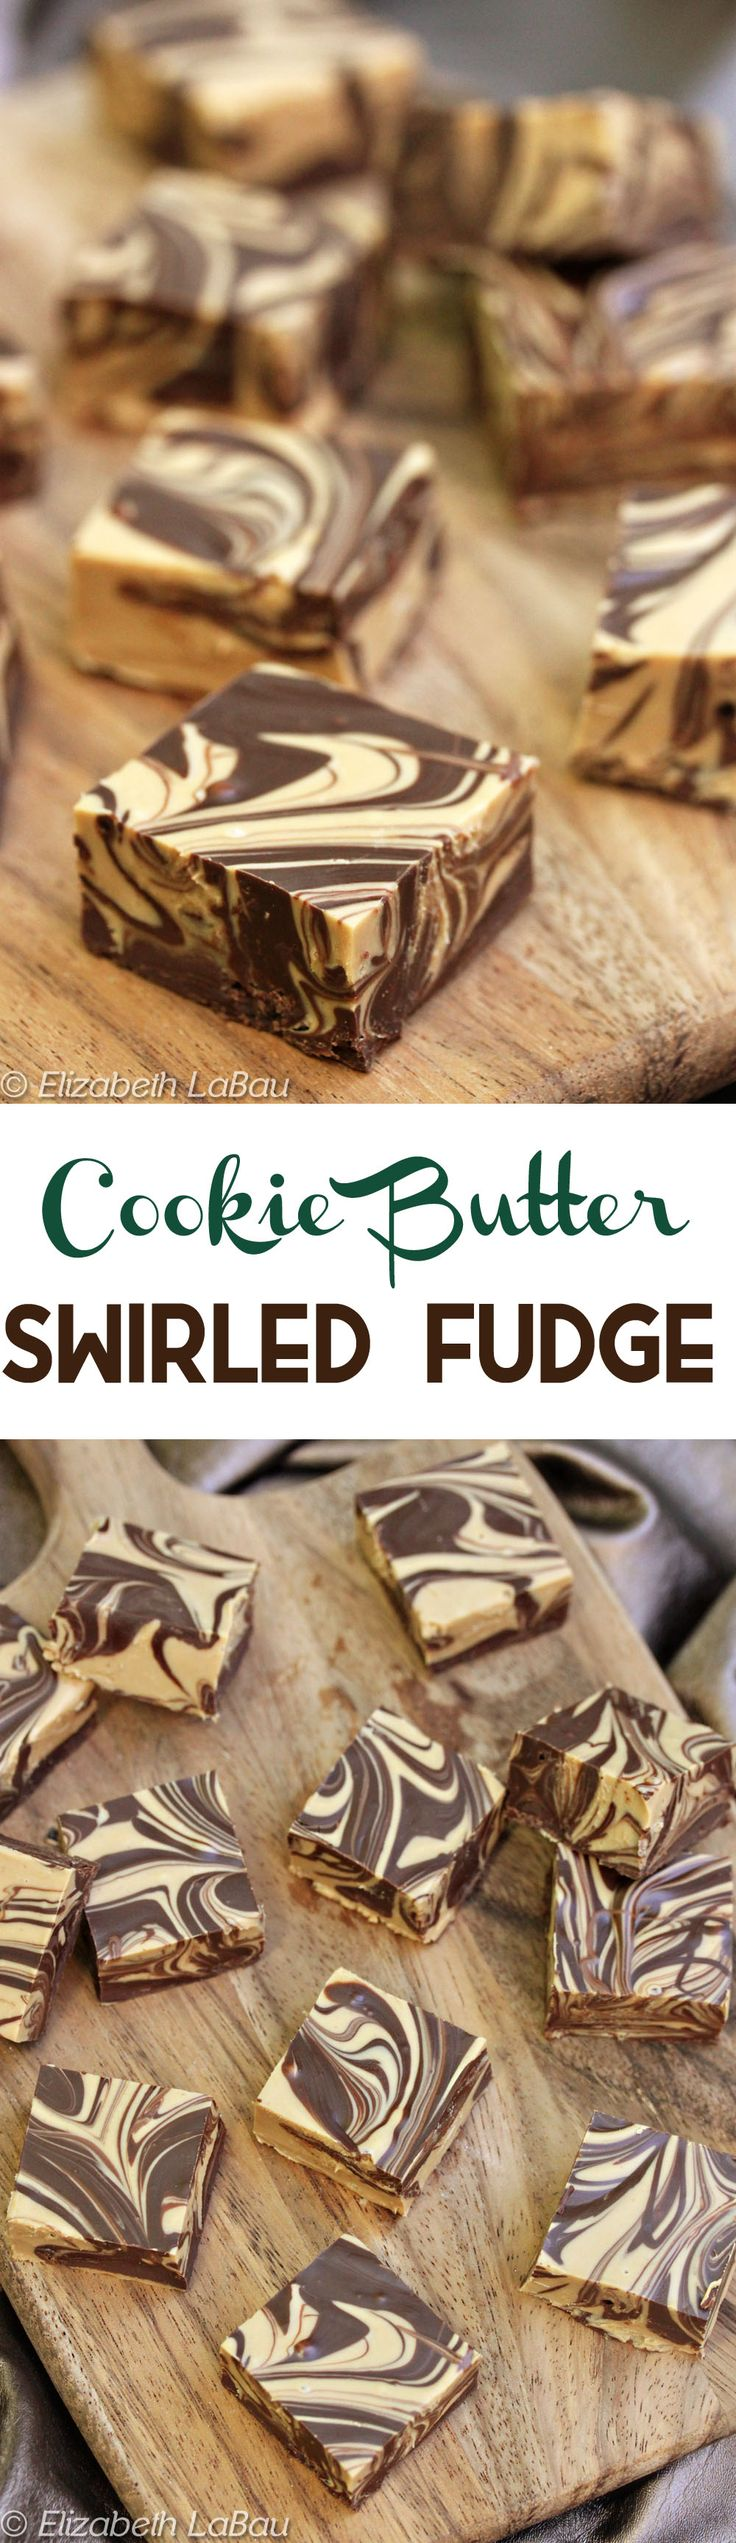 Cookie Butter Swirled Fudge- an easy, four-ingredient recipe made entirely in the microwave! It's simple, quick, gorgeous, and delicious! | From candy.about.com (Sweet Recipes Candies)